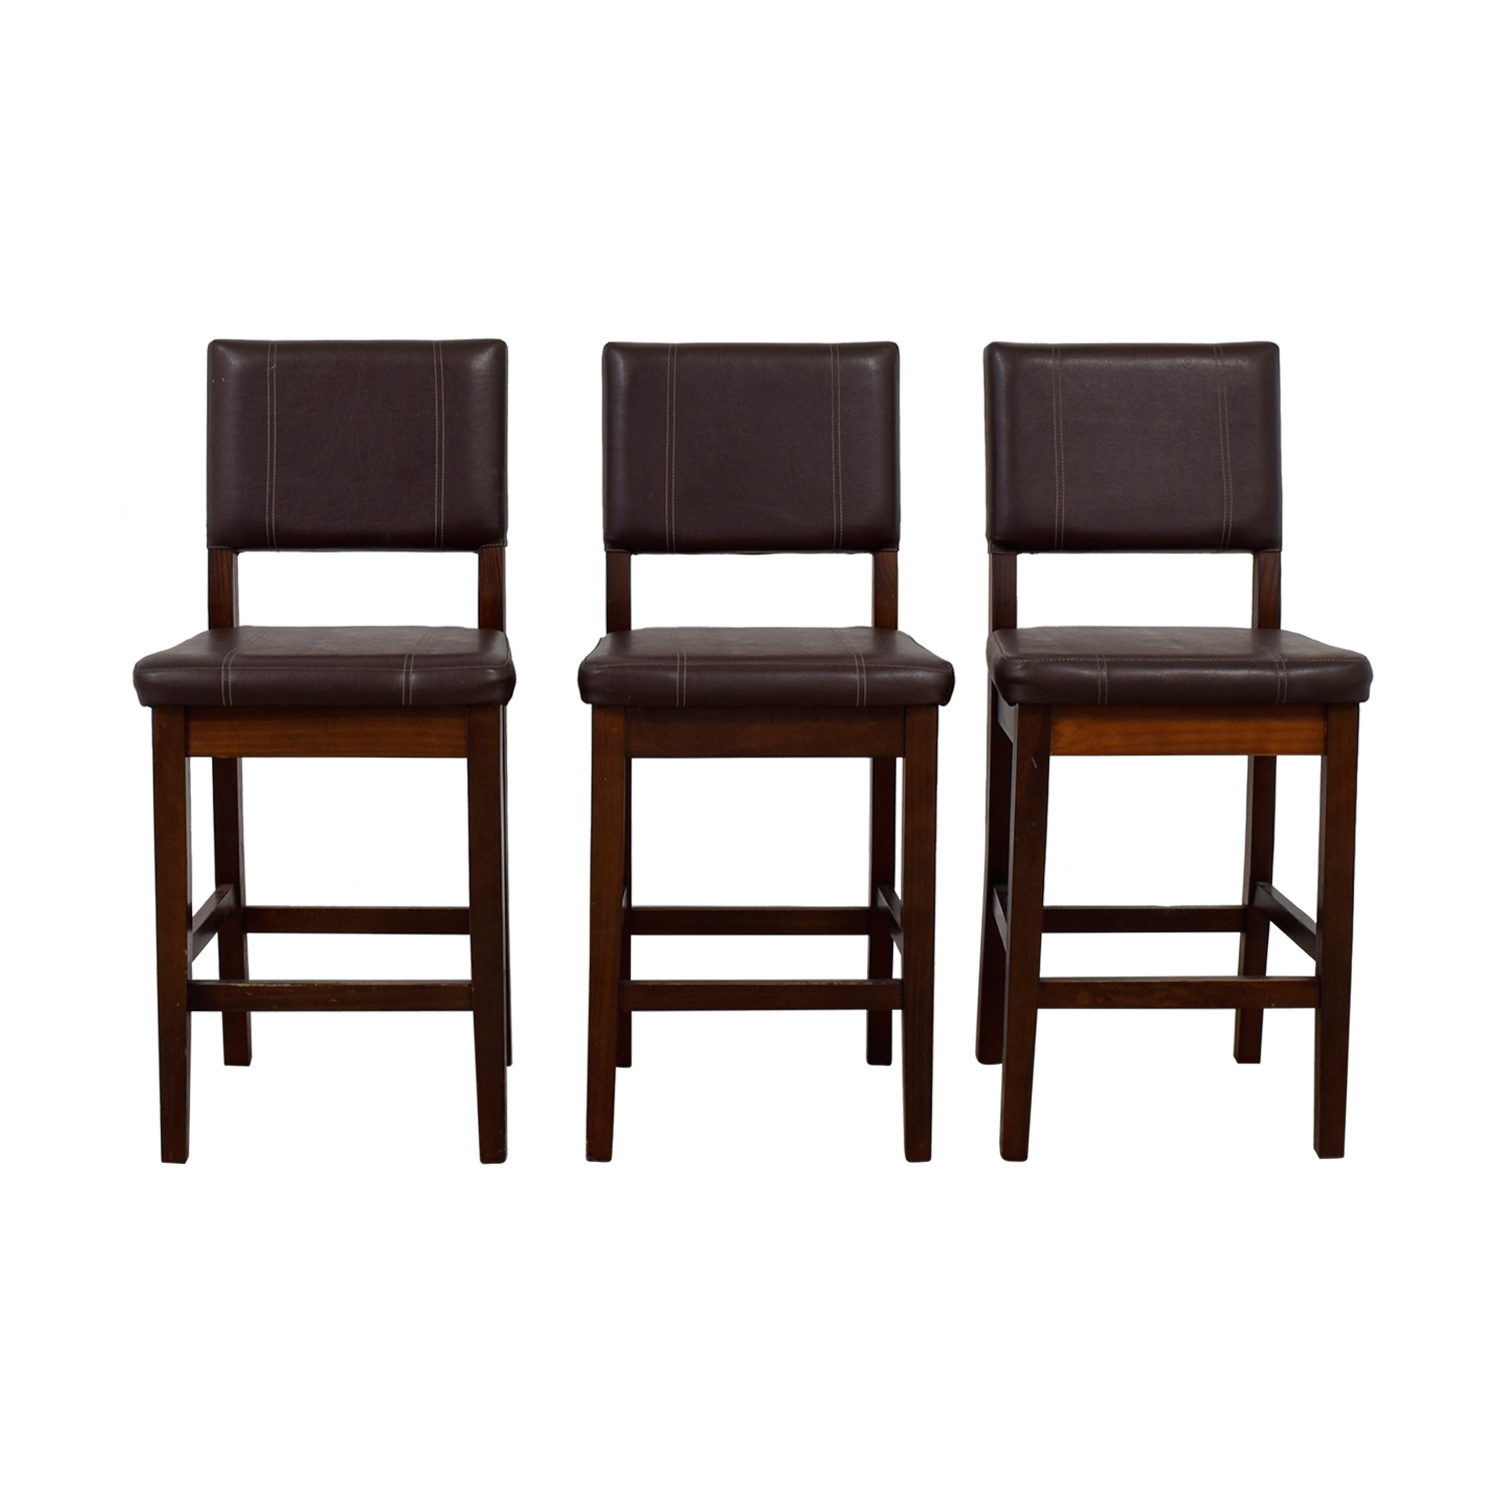 Amazing 71 Off Pier 1 Pier 1 Imports Brown Leather Stools Chairs Ocoug Best Dining Table And Chair Ideas Images Ocougorg